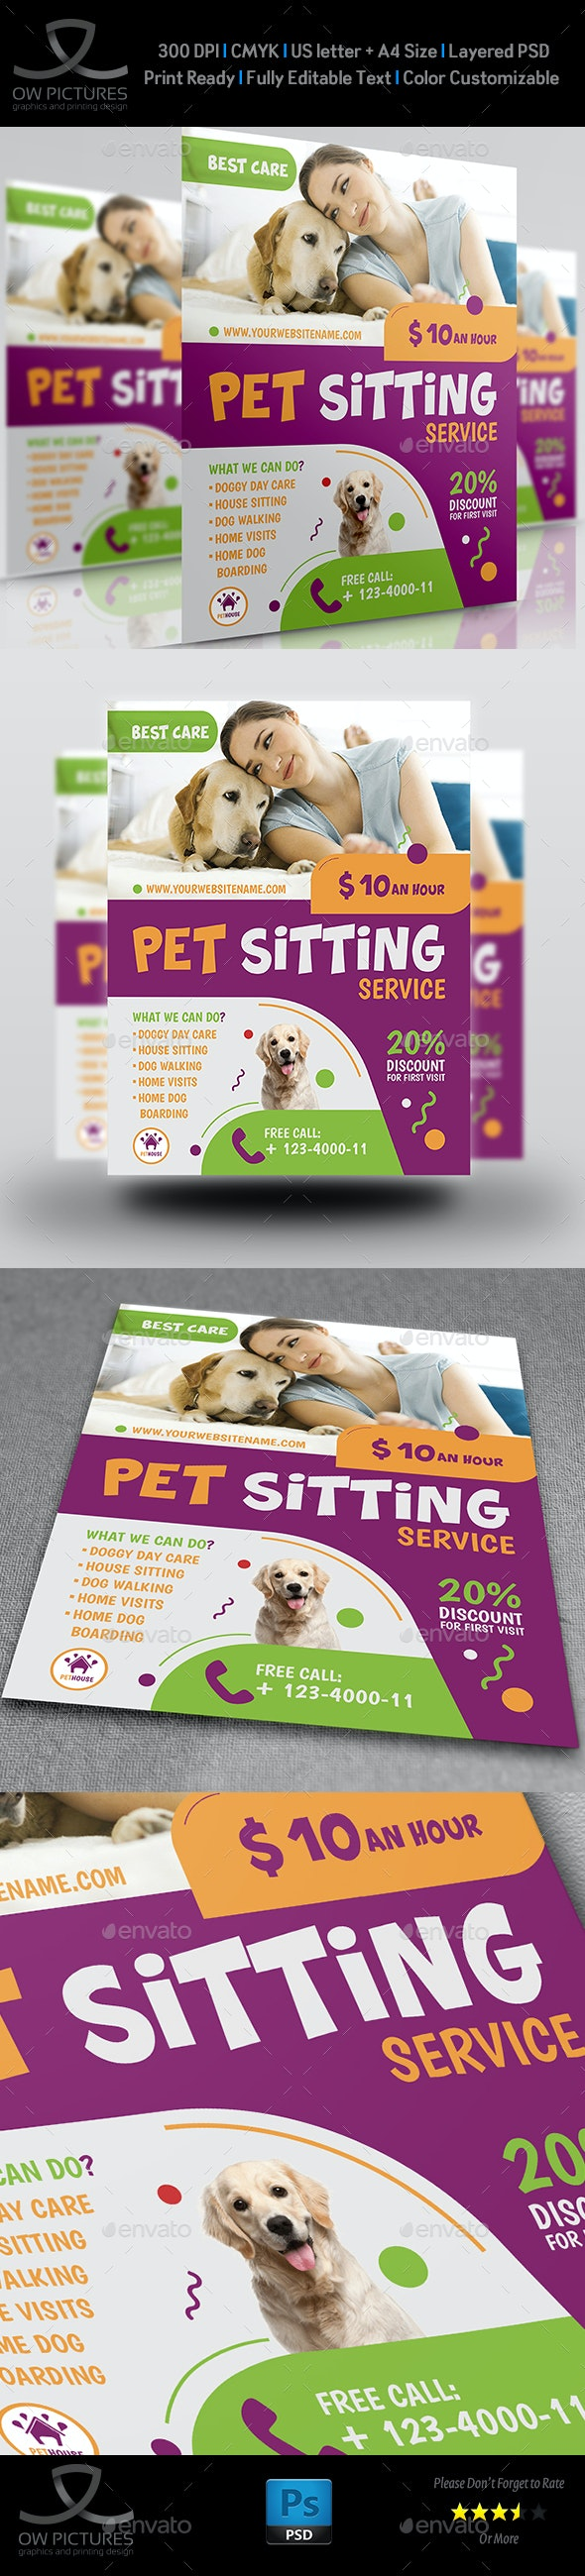 Pet Sitting Service Flyer Template - Corporate Flyers